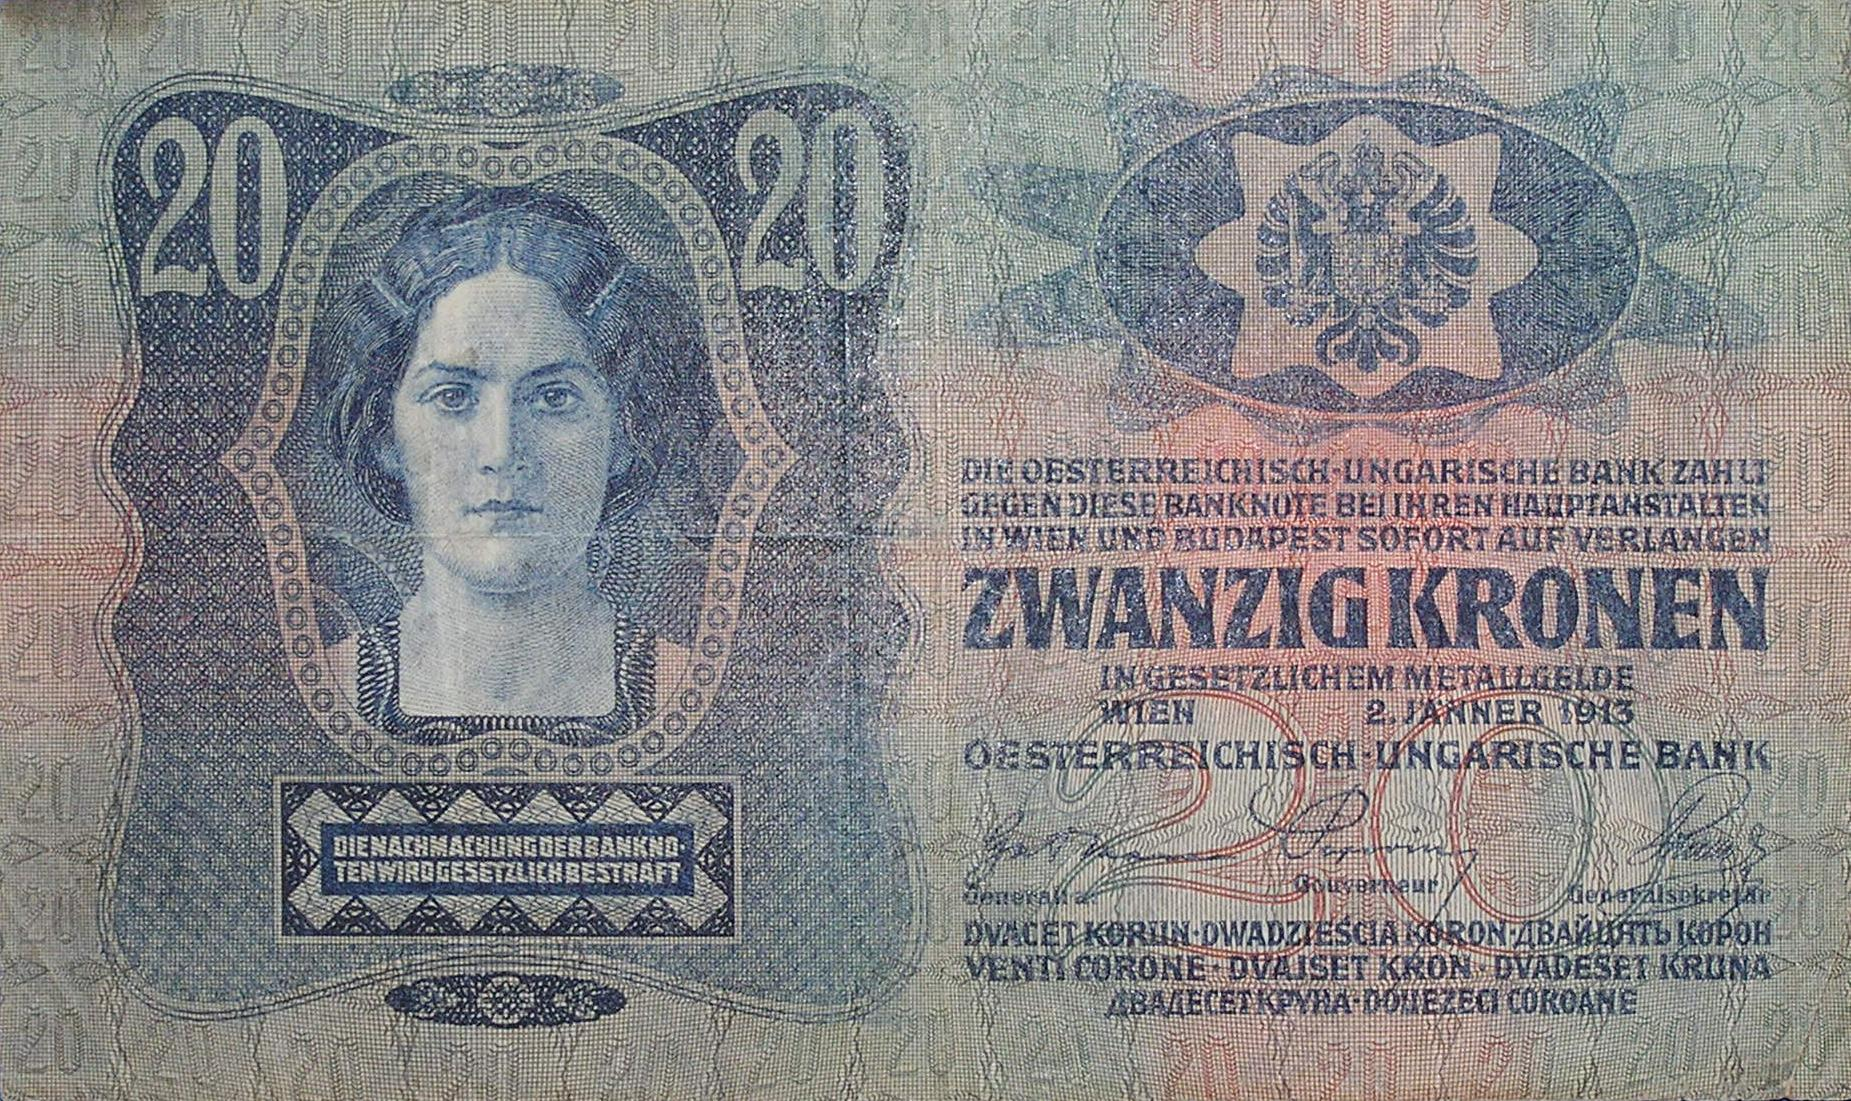 A 20 crown banknote of the Dual Monarchy